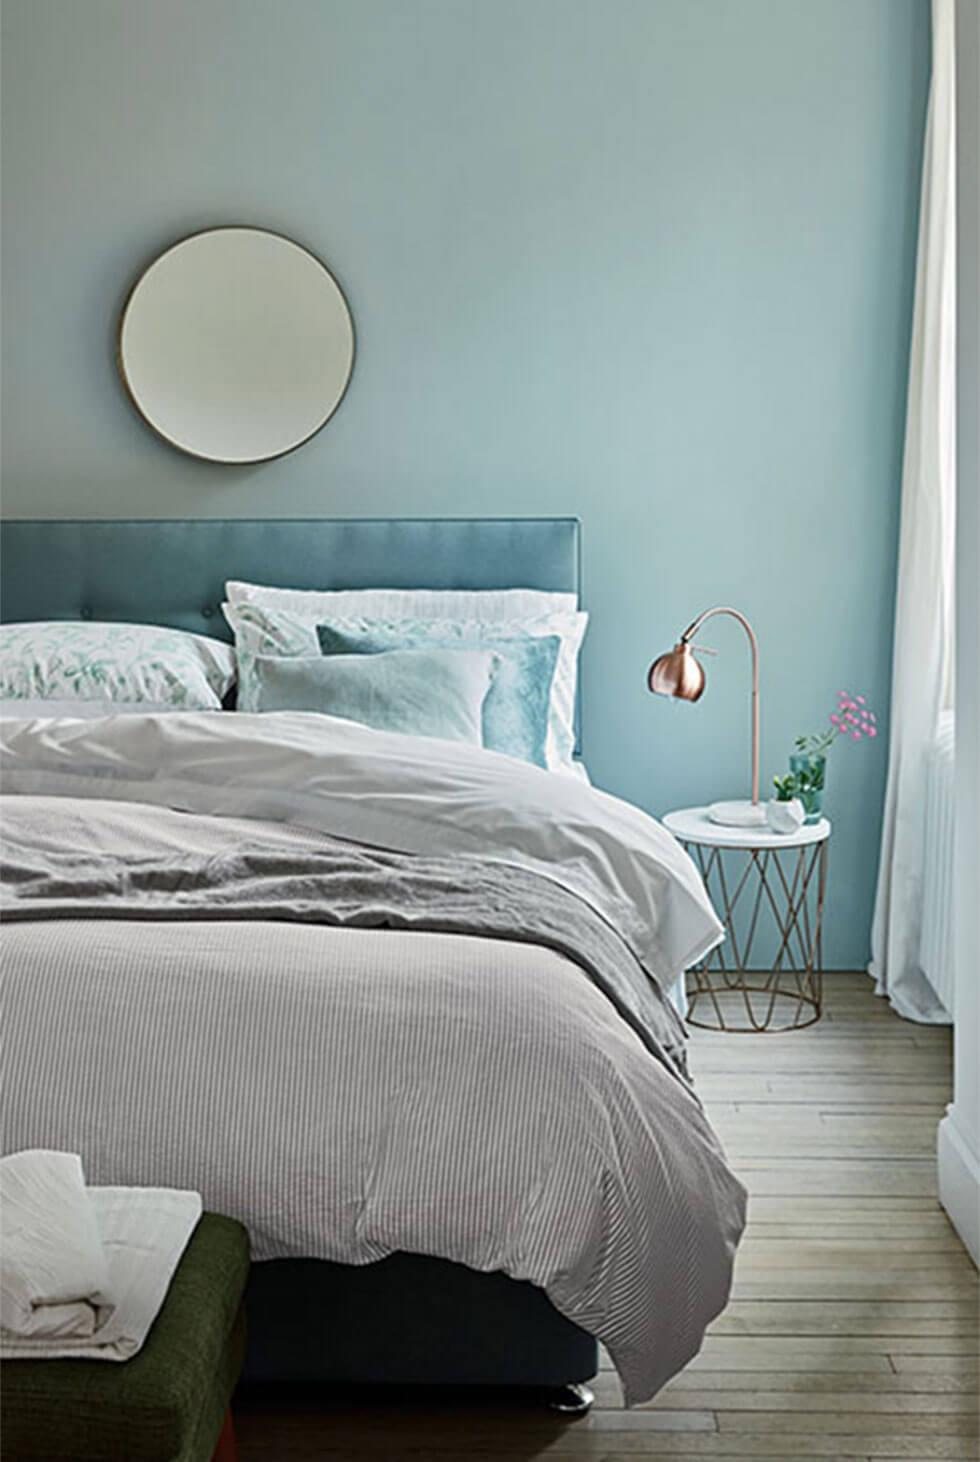 Calm, blue modern bedroom in tonal shades and soft bedding